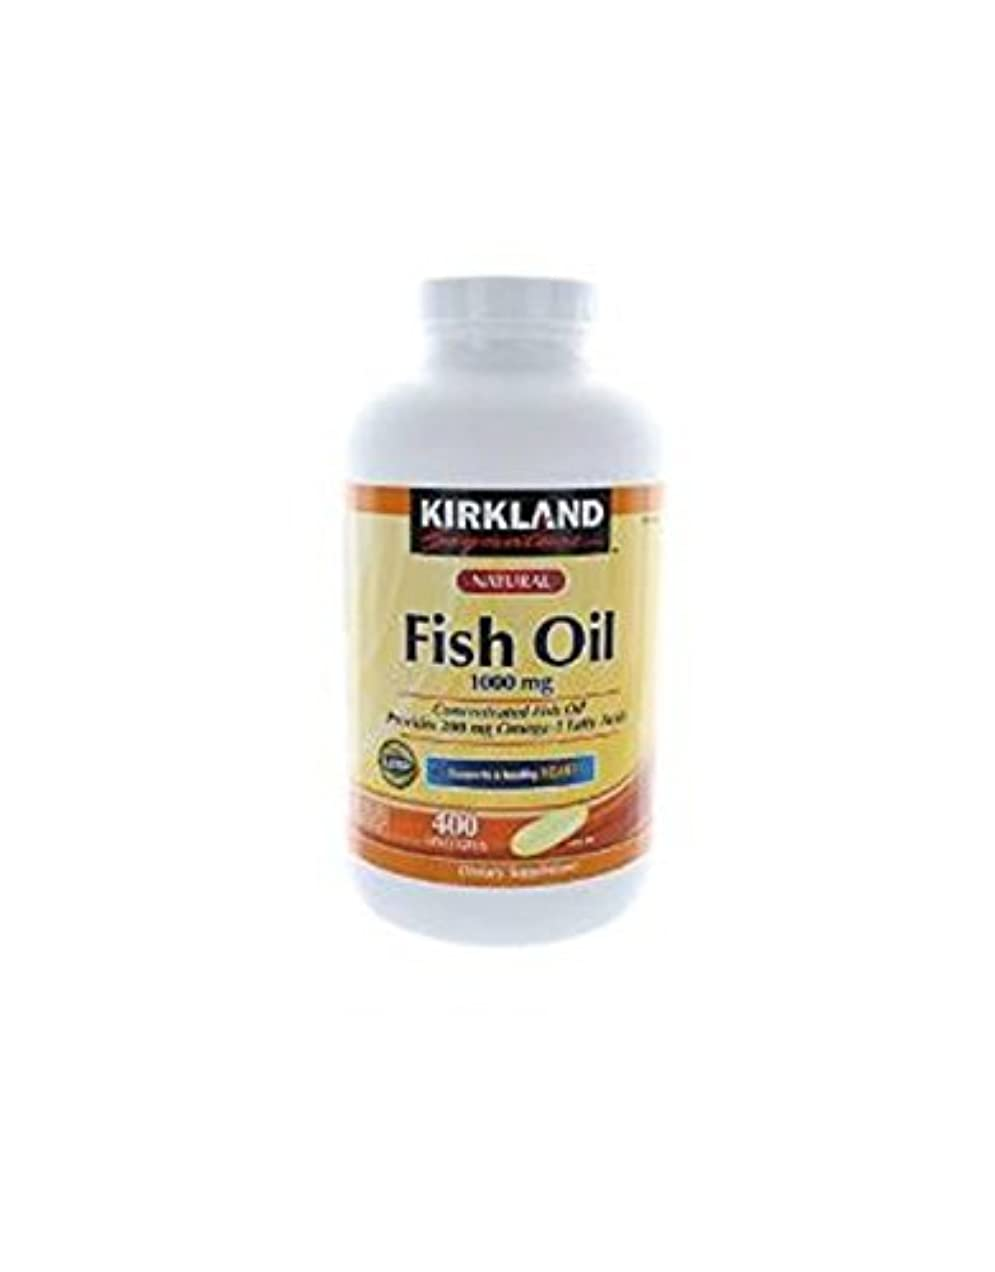 シリンダー罰する懇願するKirkland Signature Omega-3 Fish Oil Concentrate, 400 Softgels, 1000 mg Fish Oil with 30% Omega-3s (300 mg) 1200...